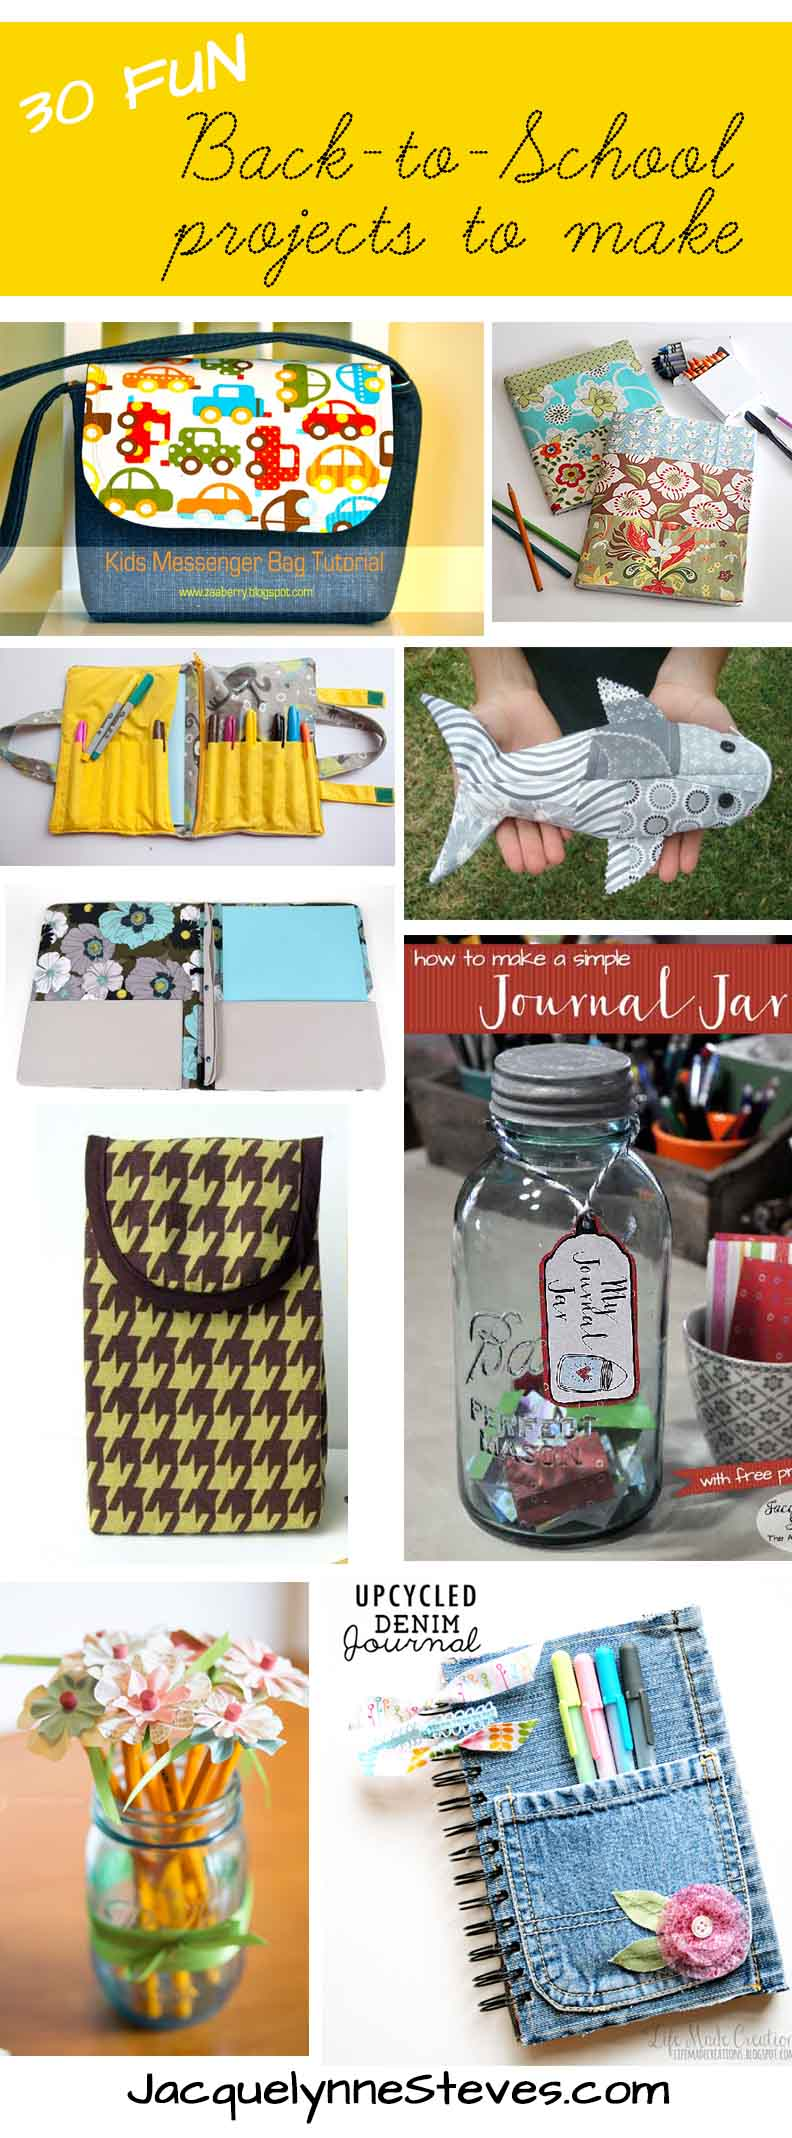 30 Fun Back-to-School Projects to make!